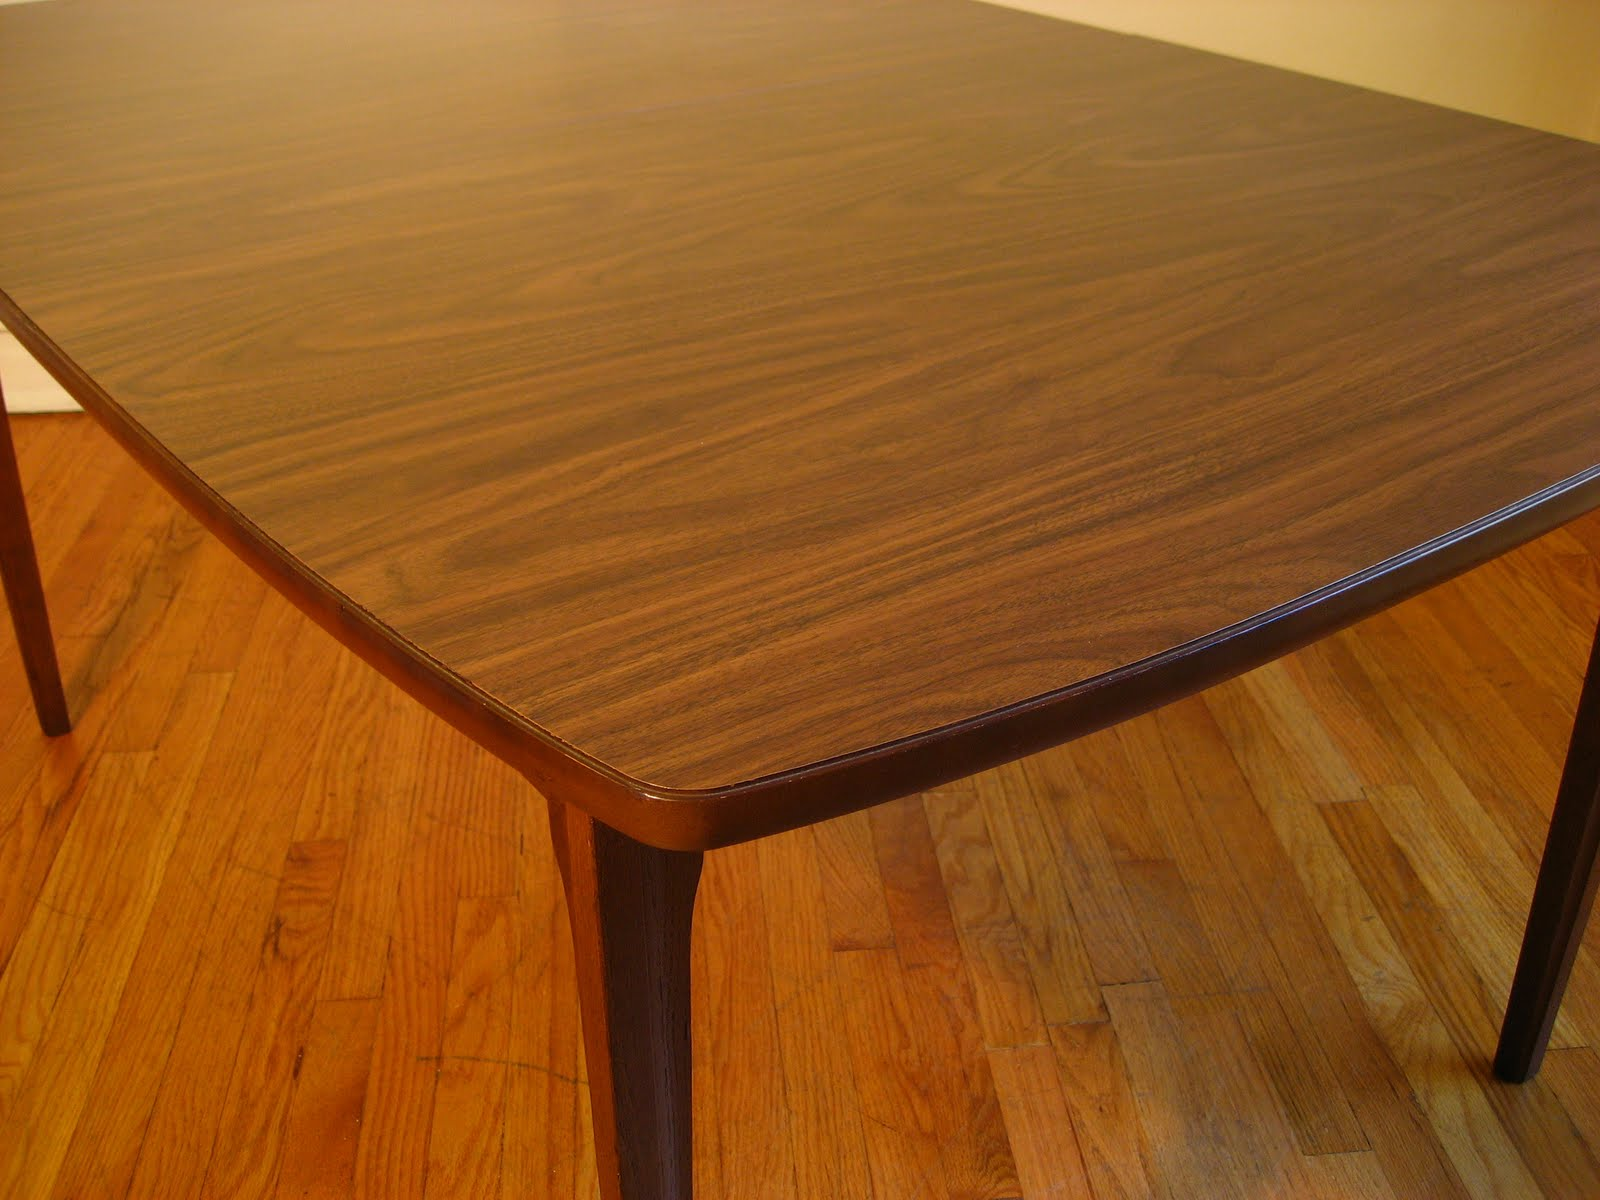 Flatout design mcm dining table - Formica top kitchen tables ...